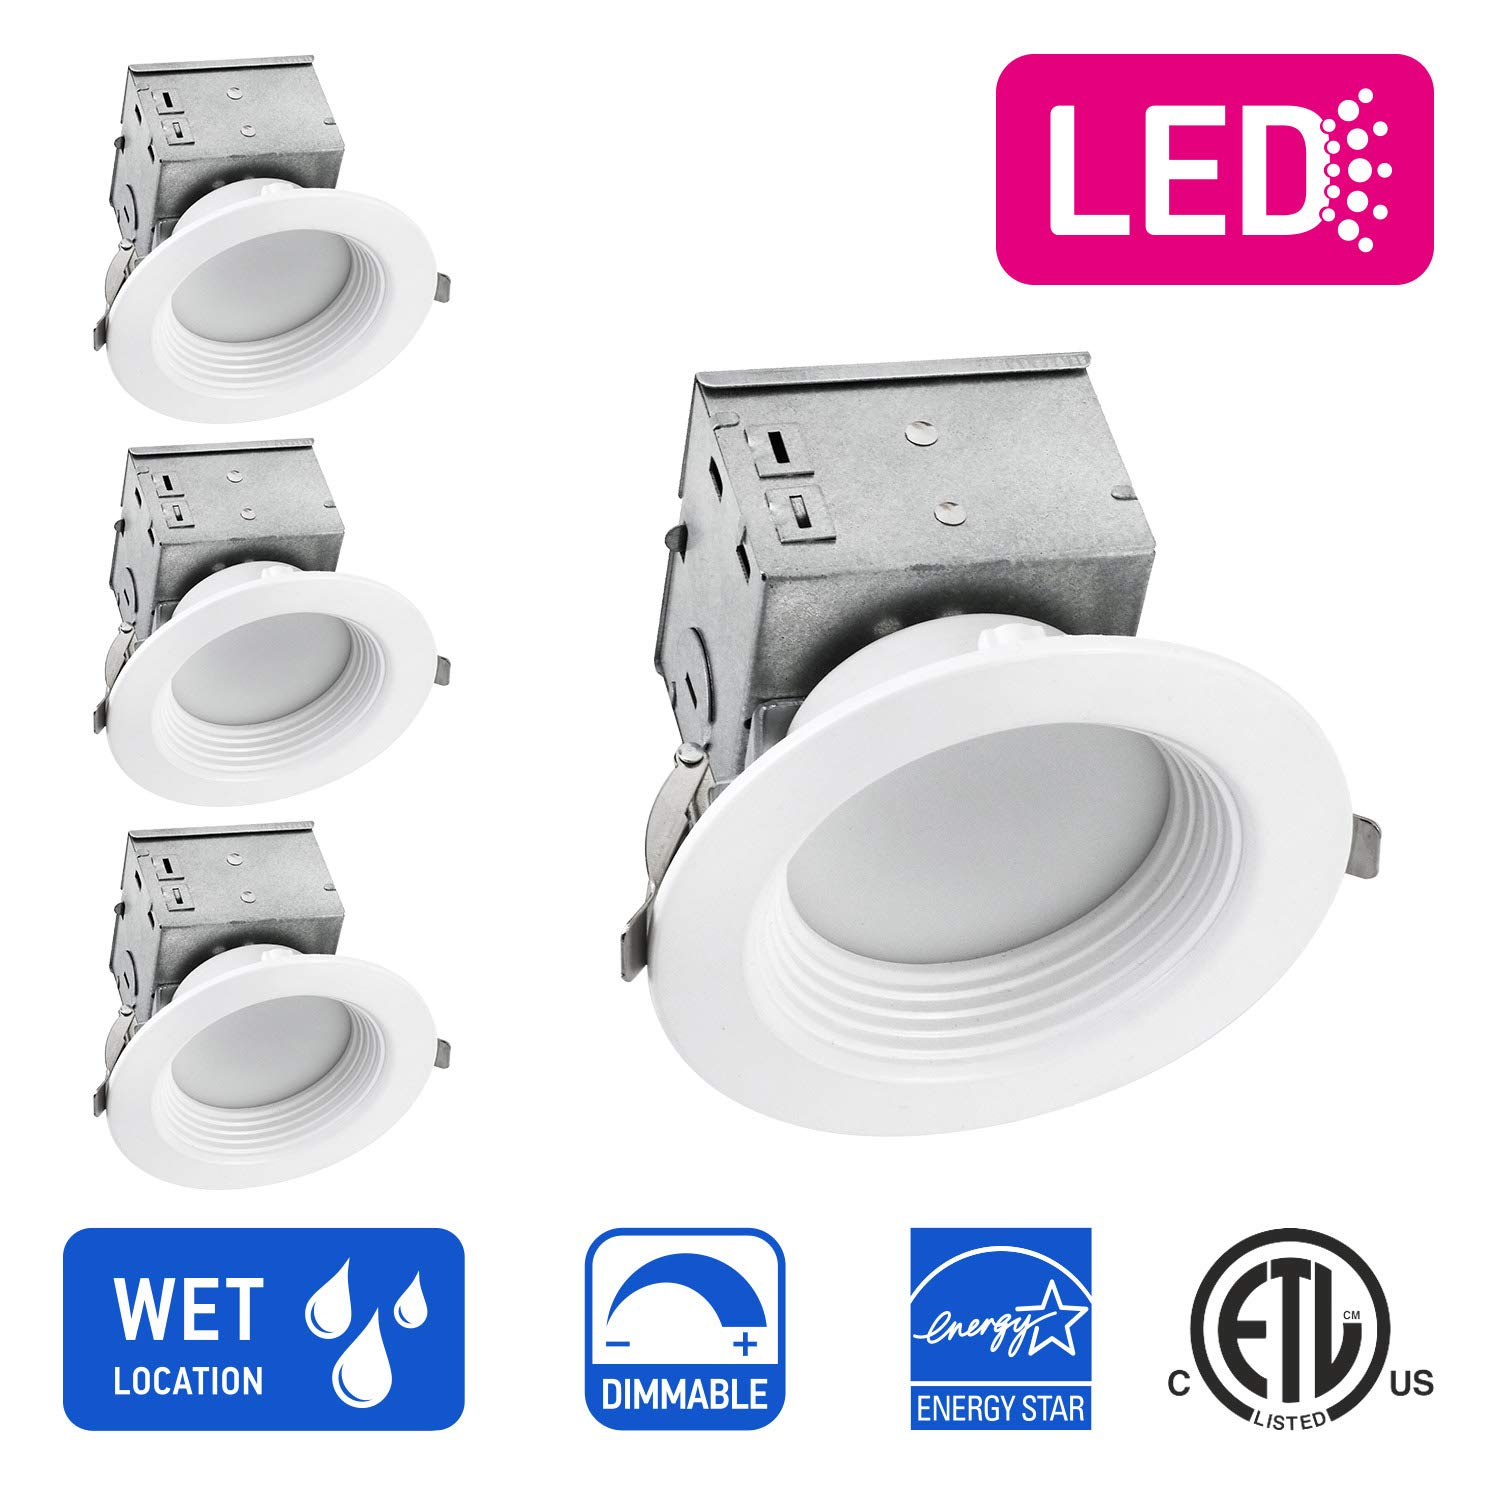 75Watt Repl No Can Needed ETL and Energy Star Listed Baffle Trim 4 inch IC Rated Round LED Ceiling Recessed Downlight Kit With Junction box OSTWIN Dimmable 10W 5000K Daylight 4 Pack 750Lm